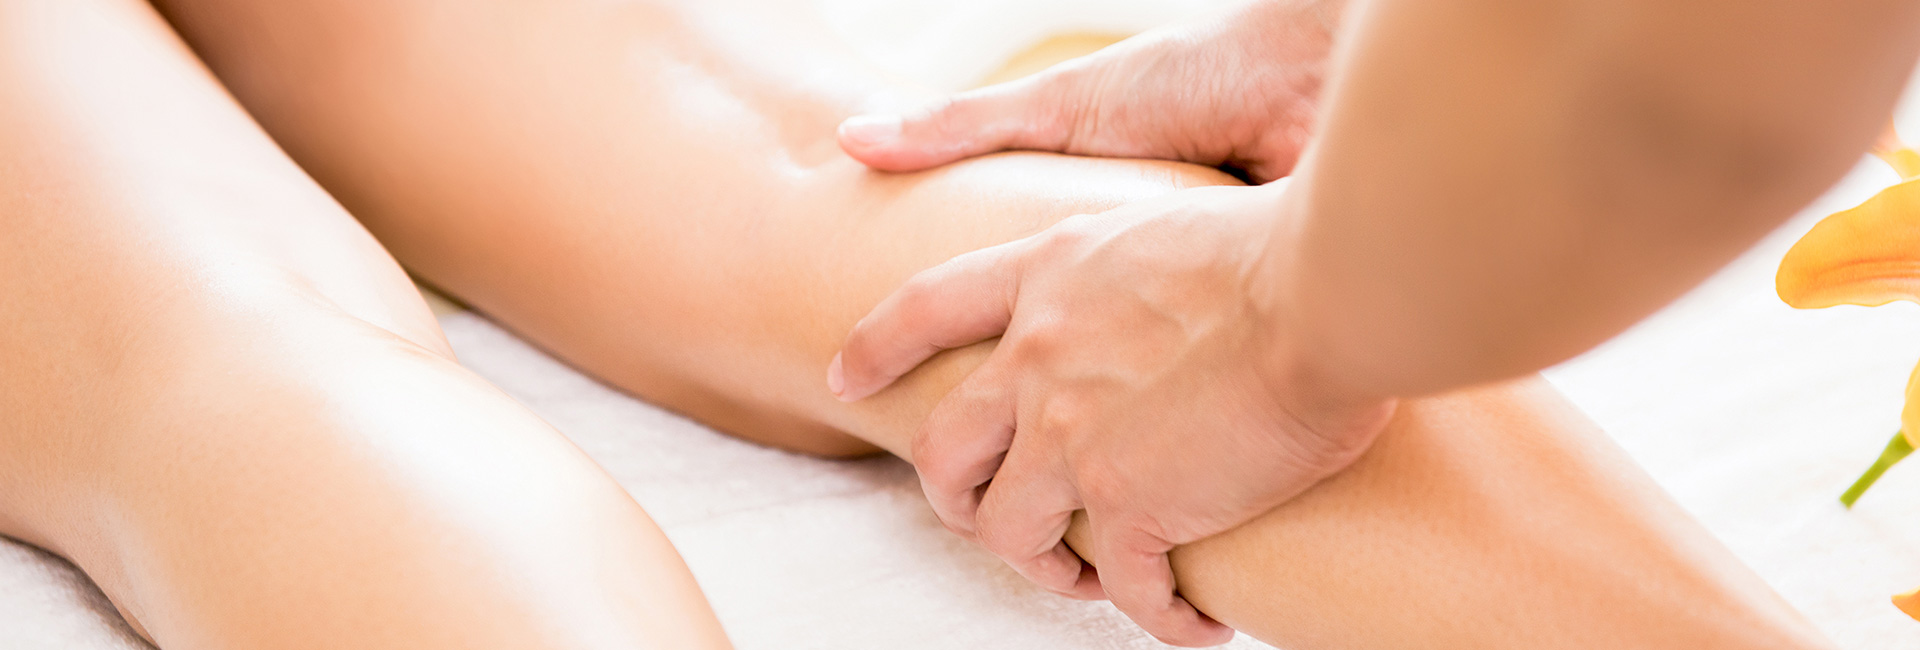 Therapeutic-Associates-Physical-Therapy-Lymphedema-Treatment